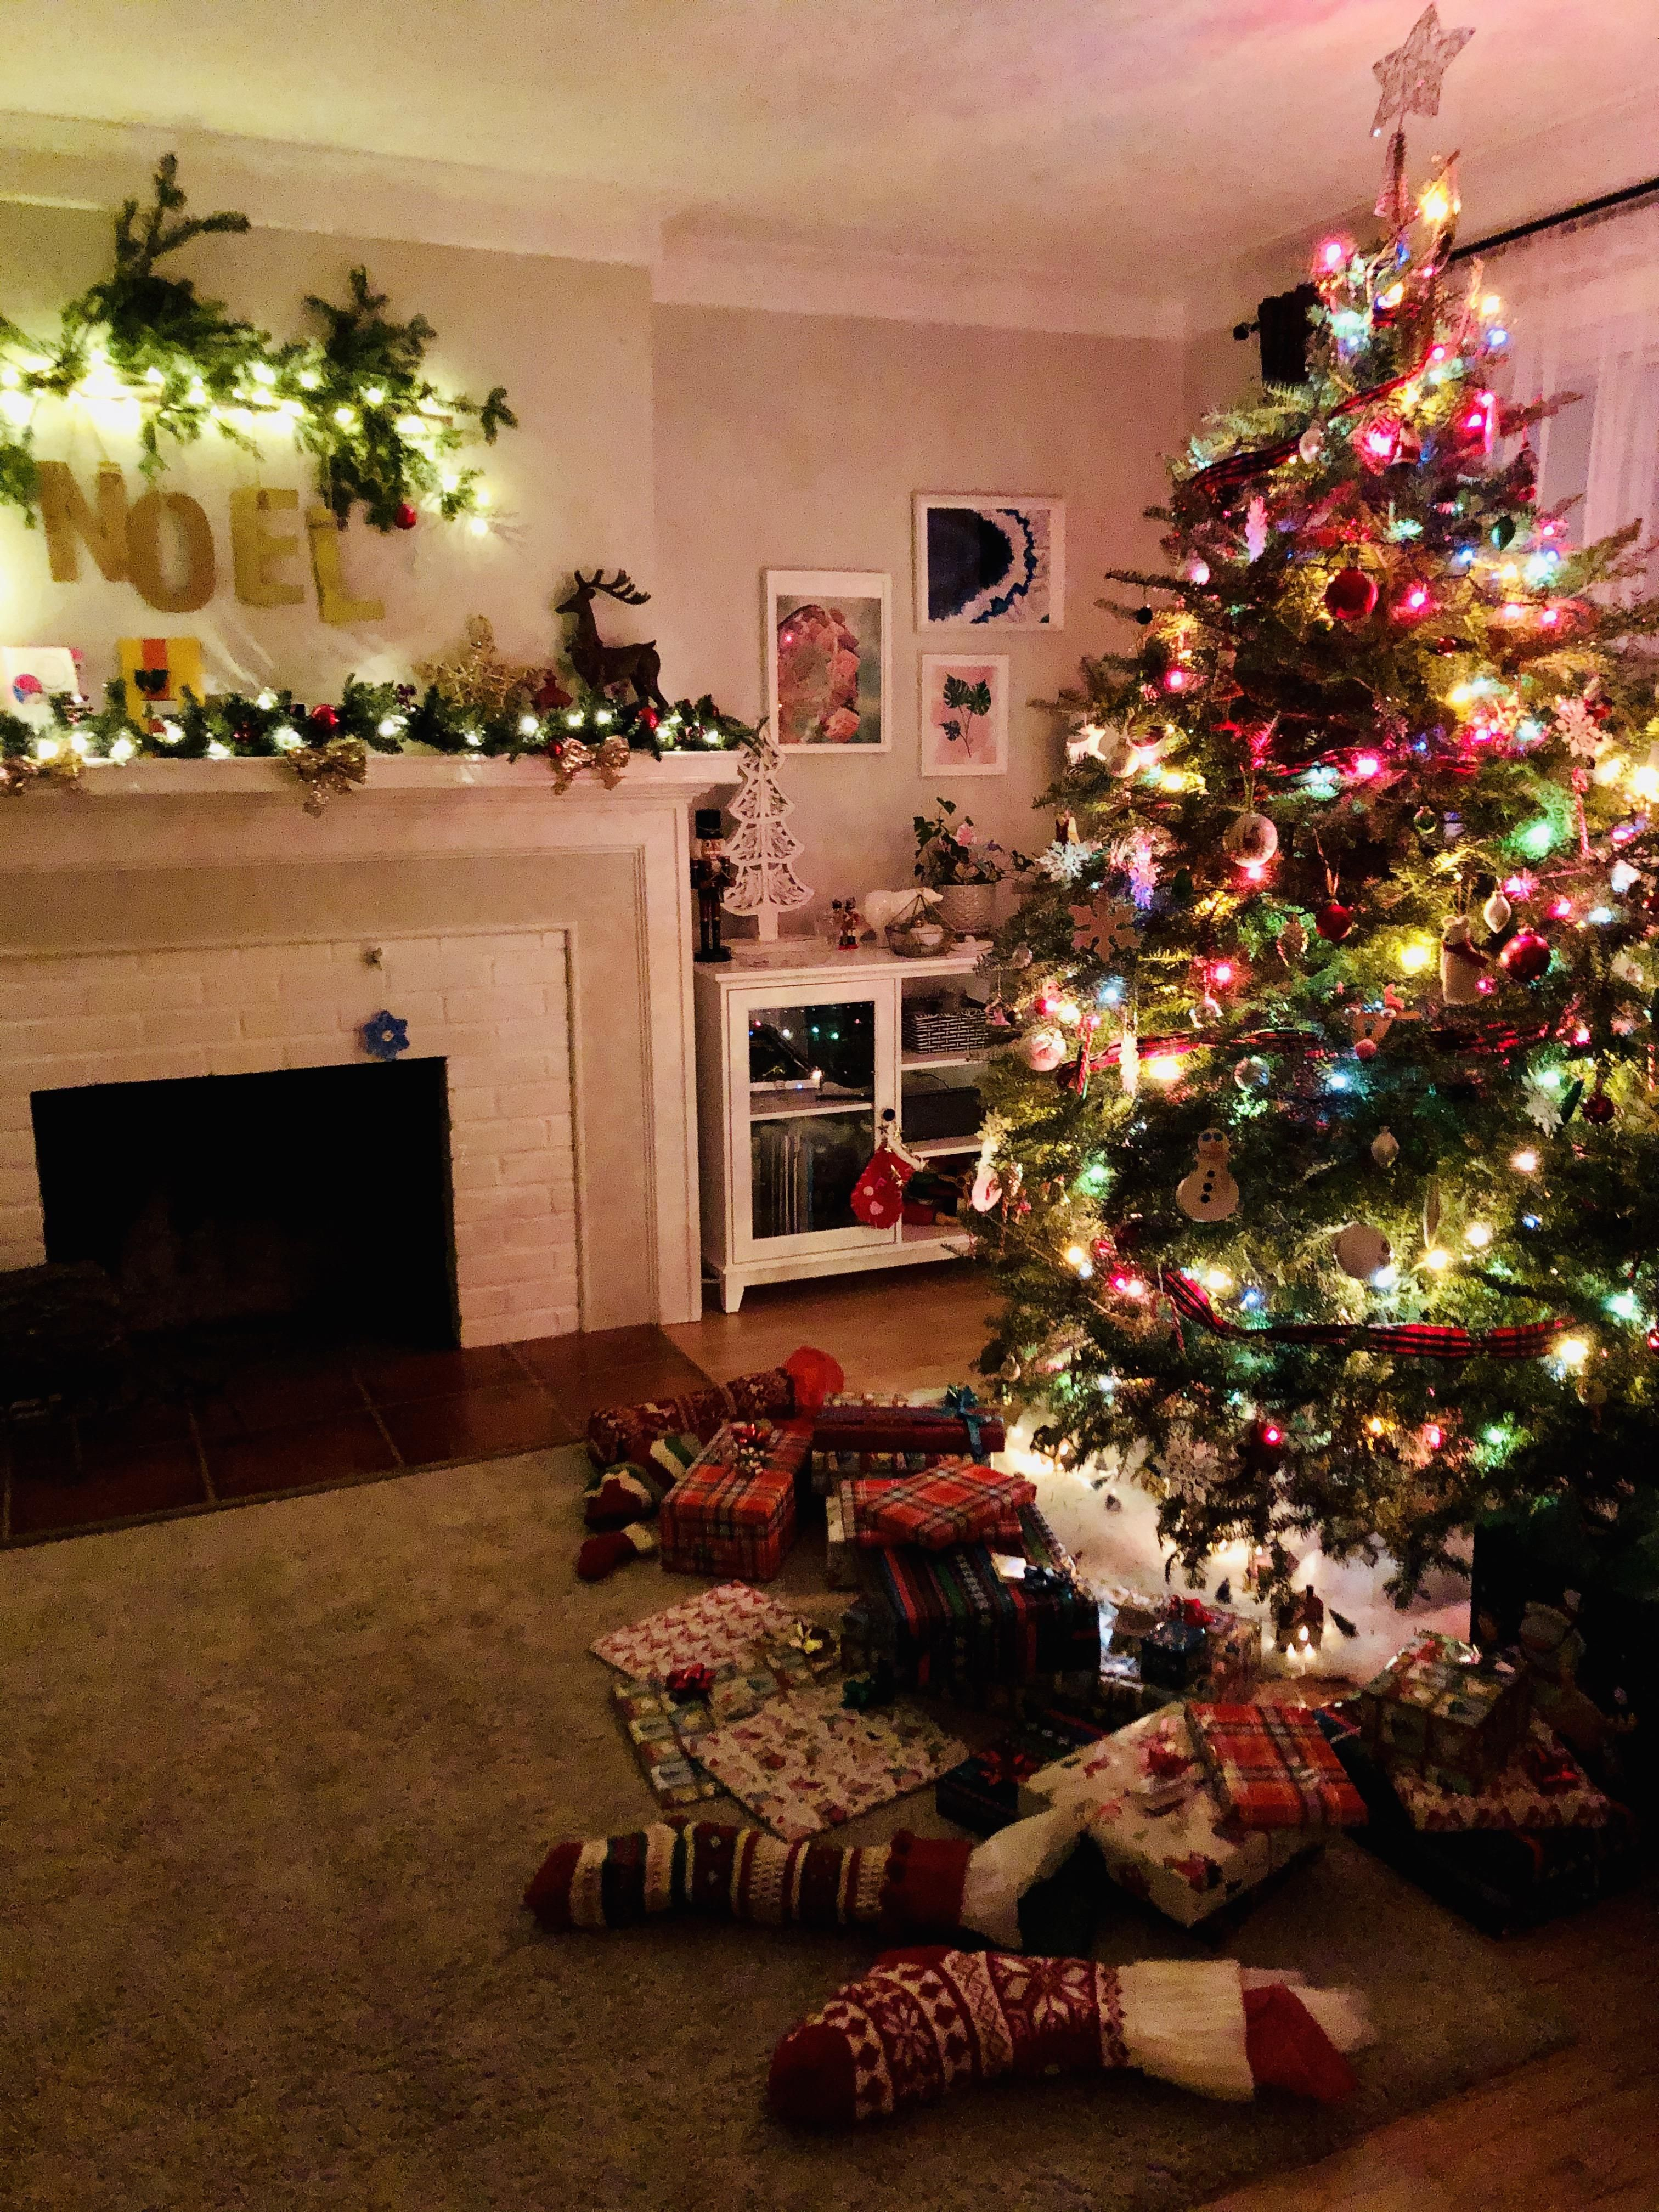 Kids Are Asleep Looks Like Santa Flew In Early This Year Merry Christmas Reddit Cozy Place Holiday Decor Creative Home Decor